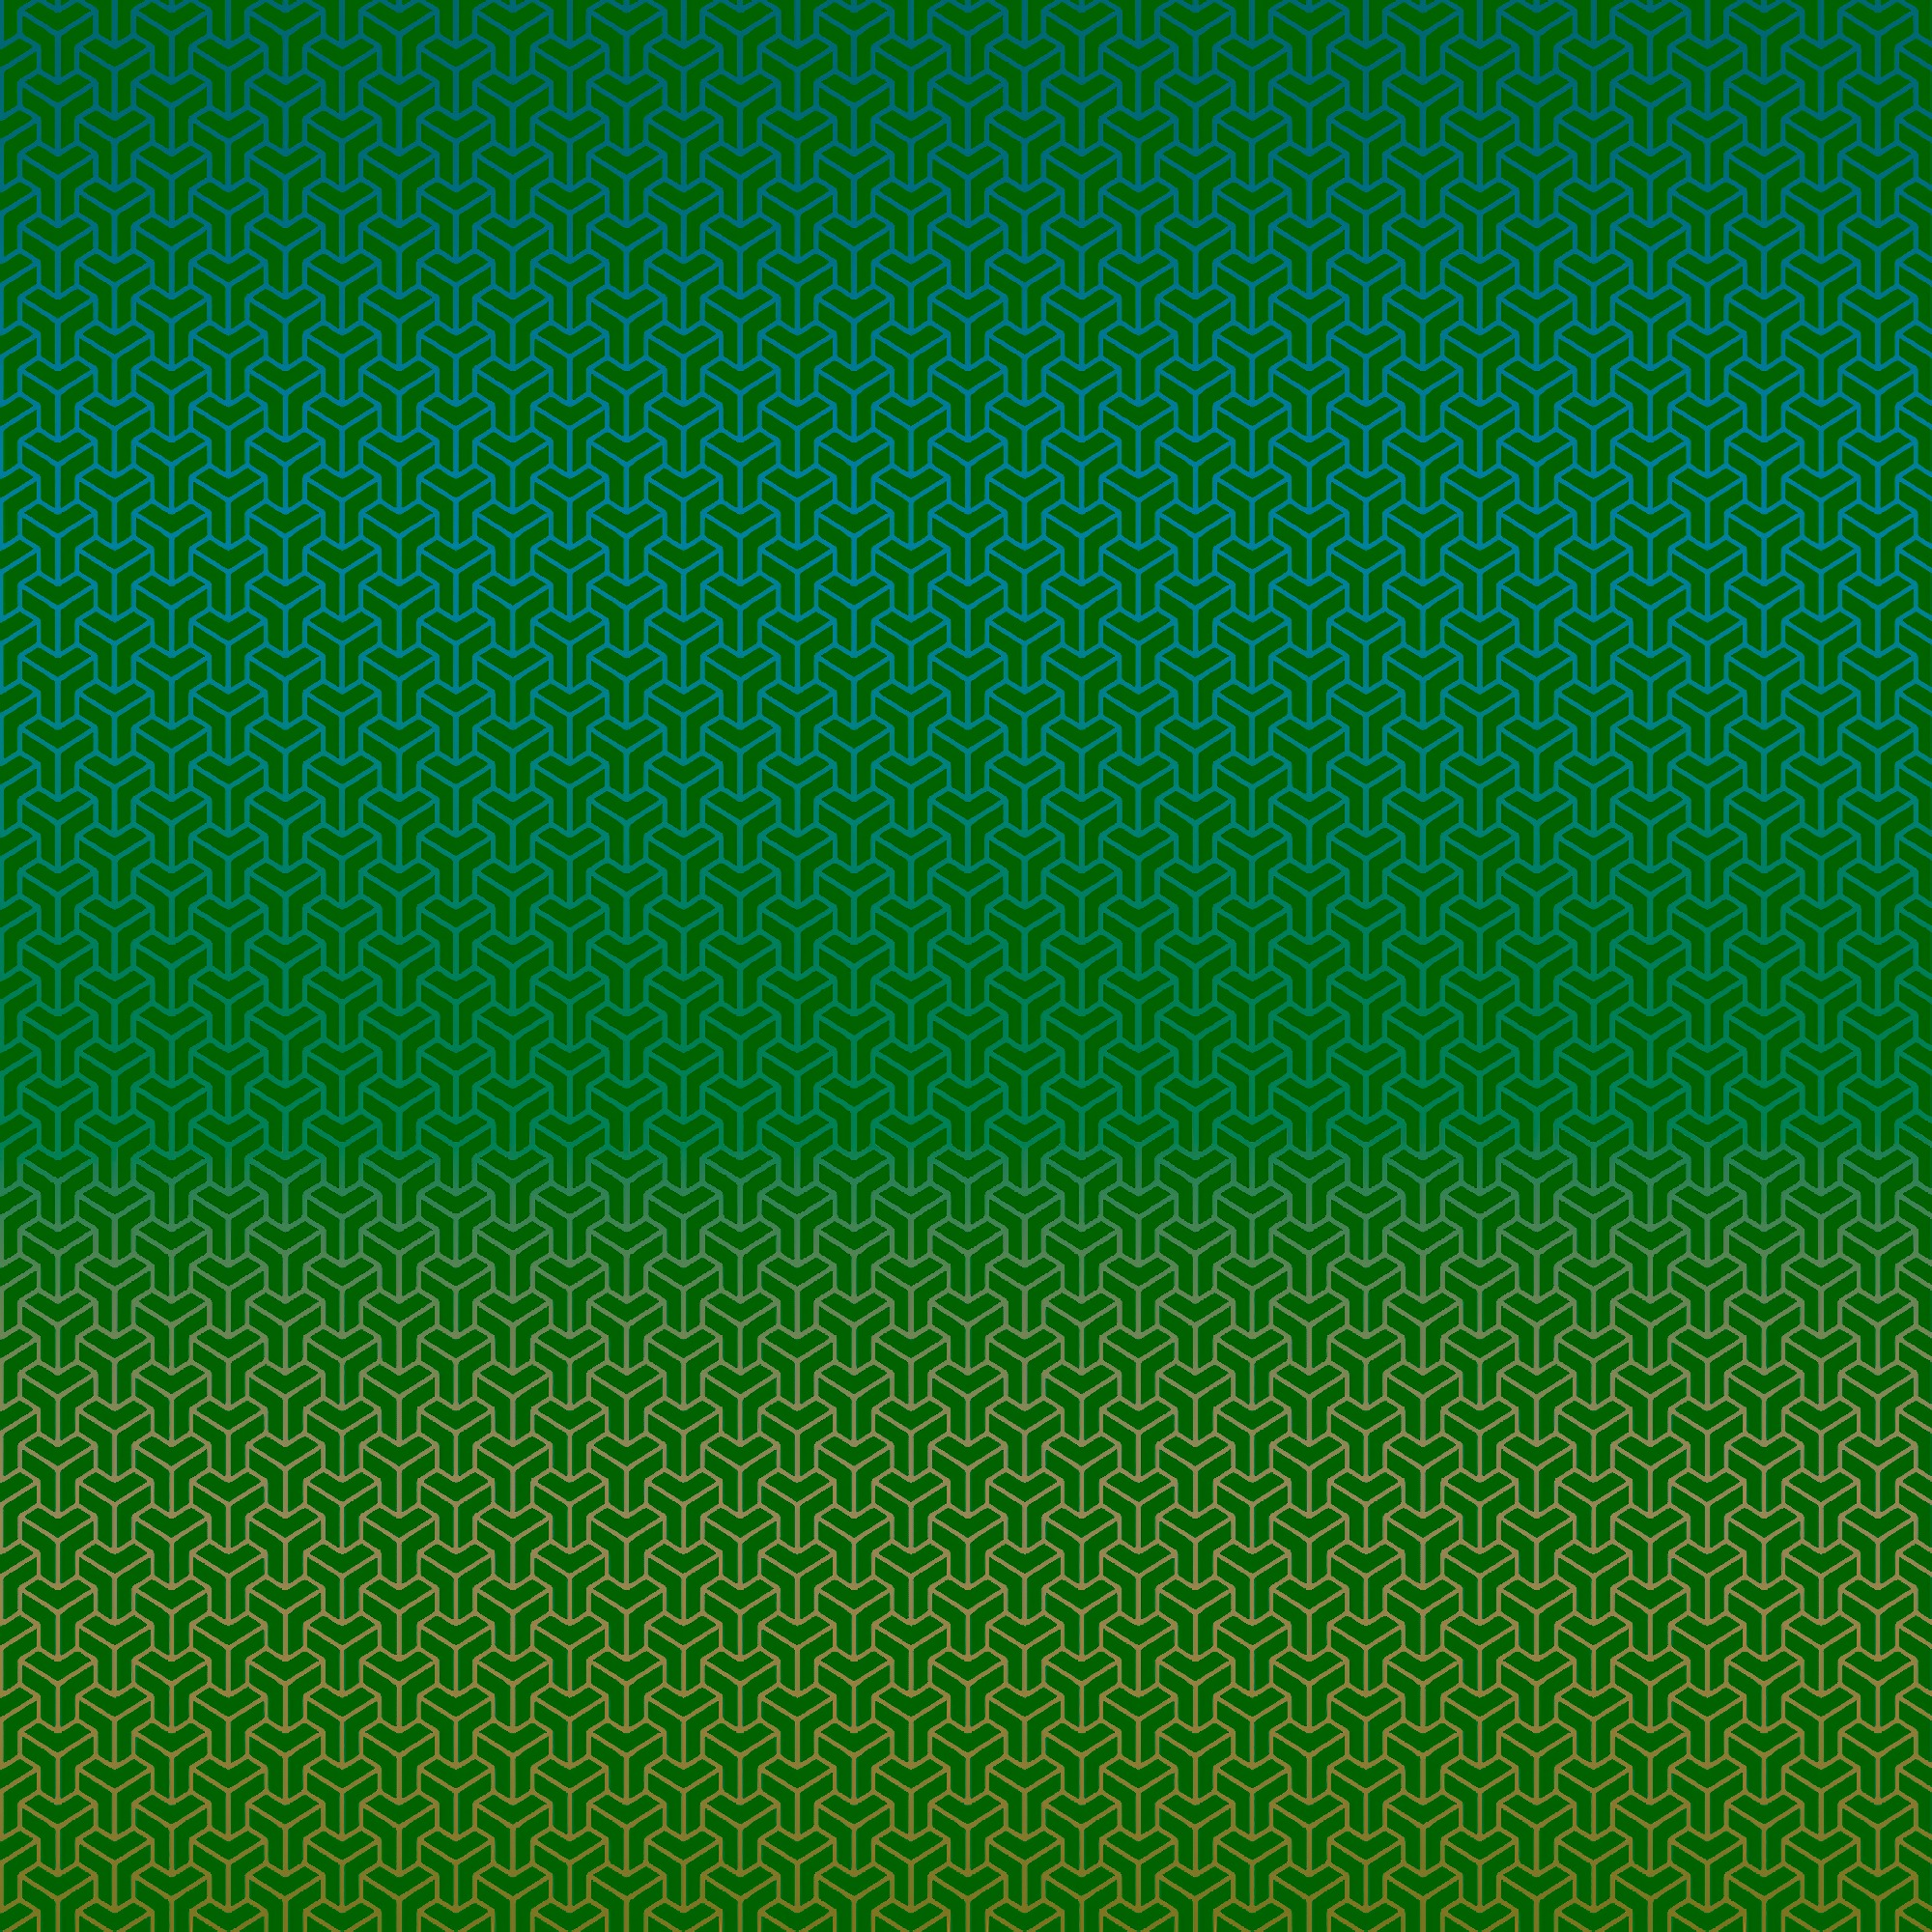 129993 free download Green wallpapers for phone, Textures, Texture, Pattern, Gradient Green images and screensavers for mobile